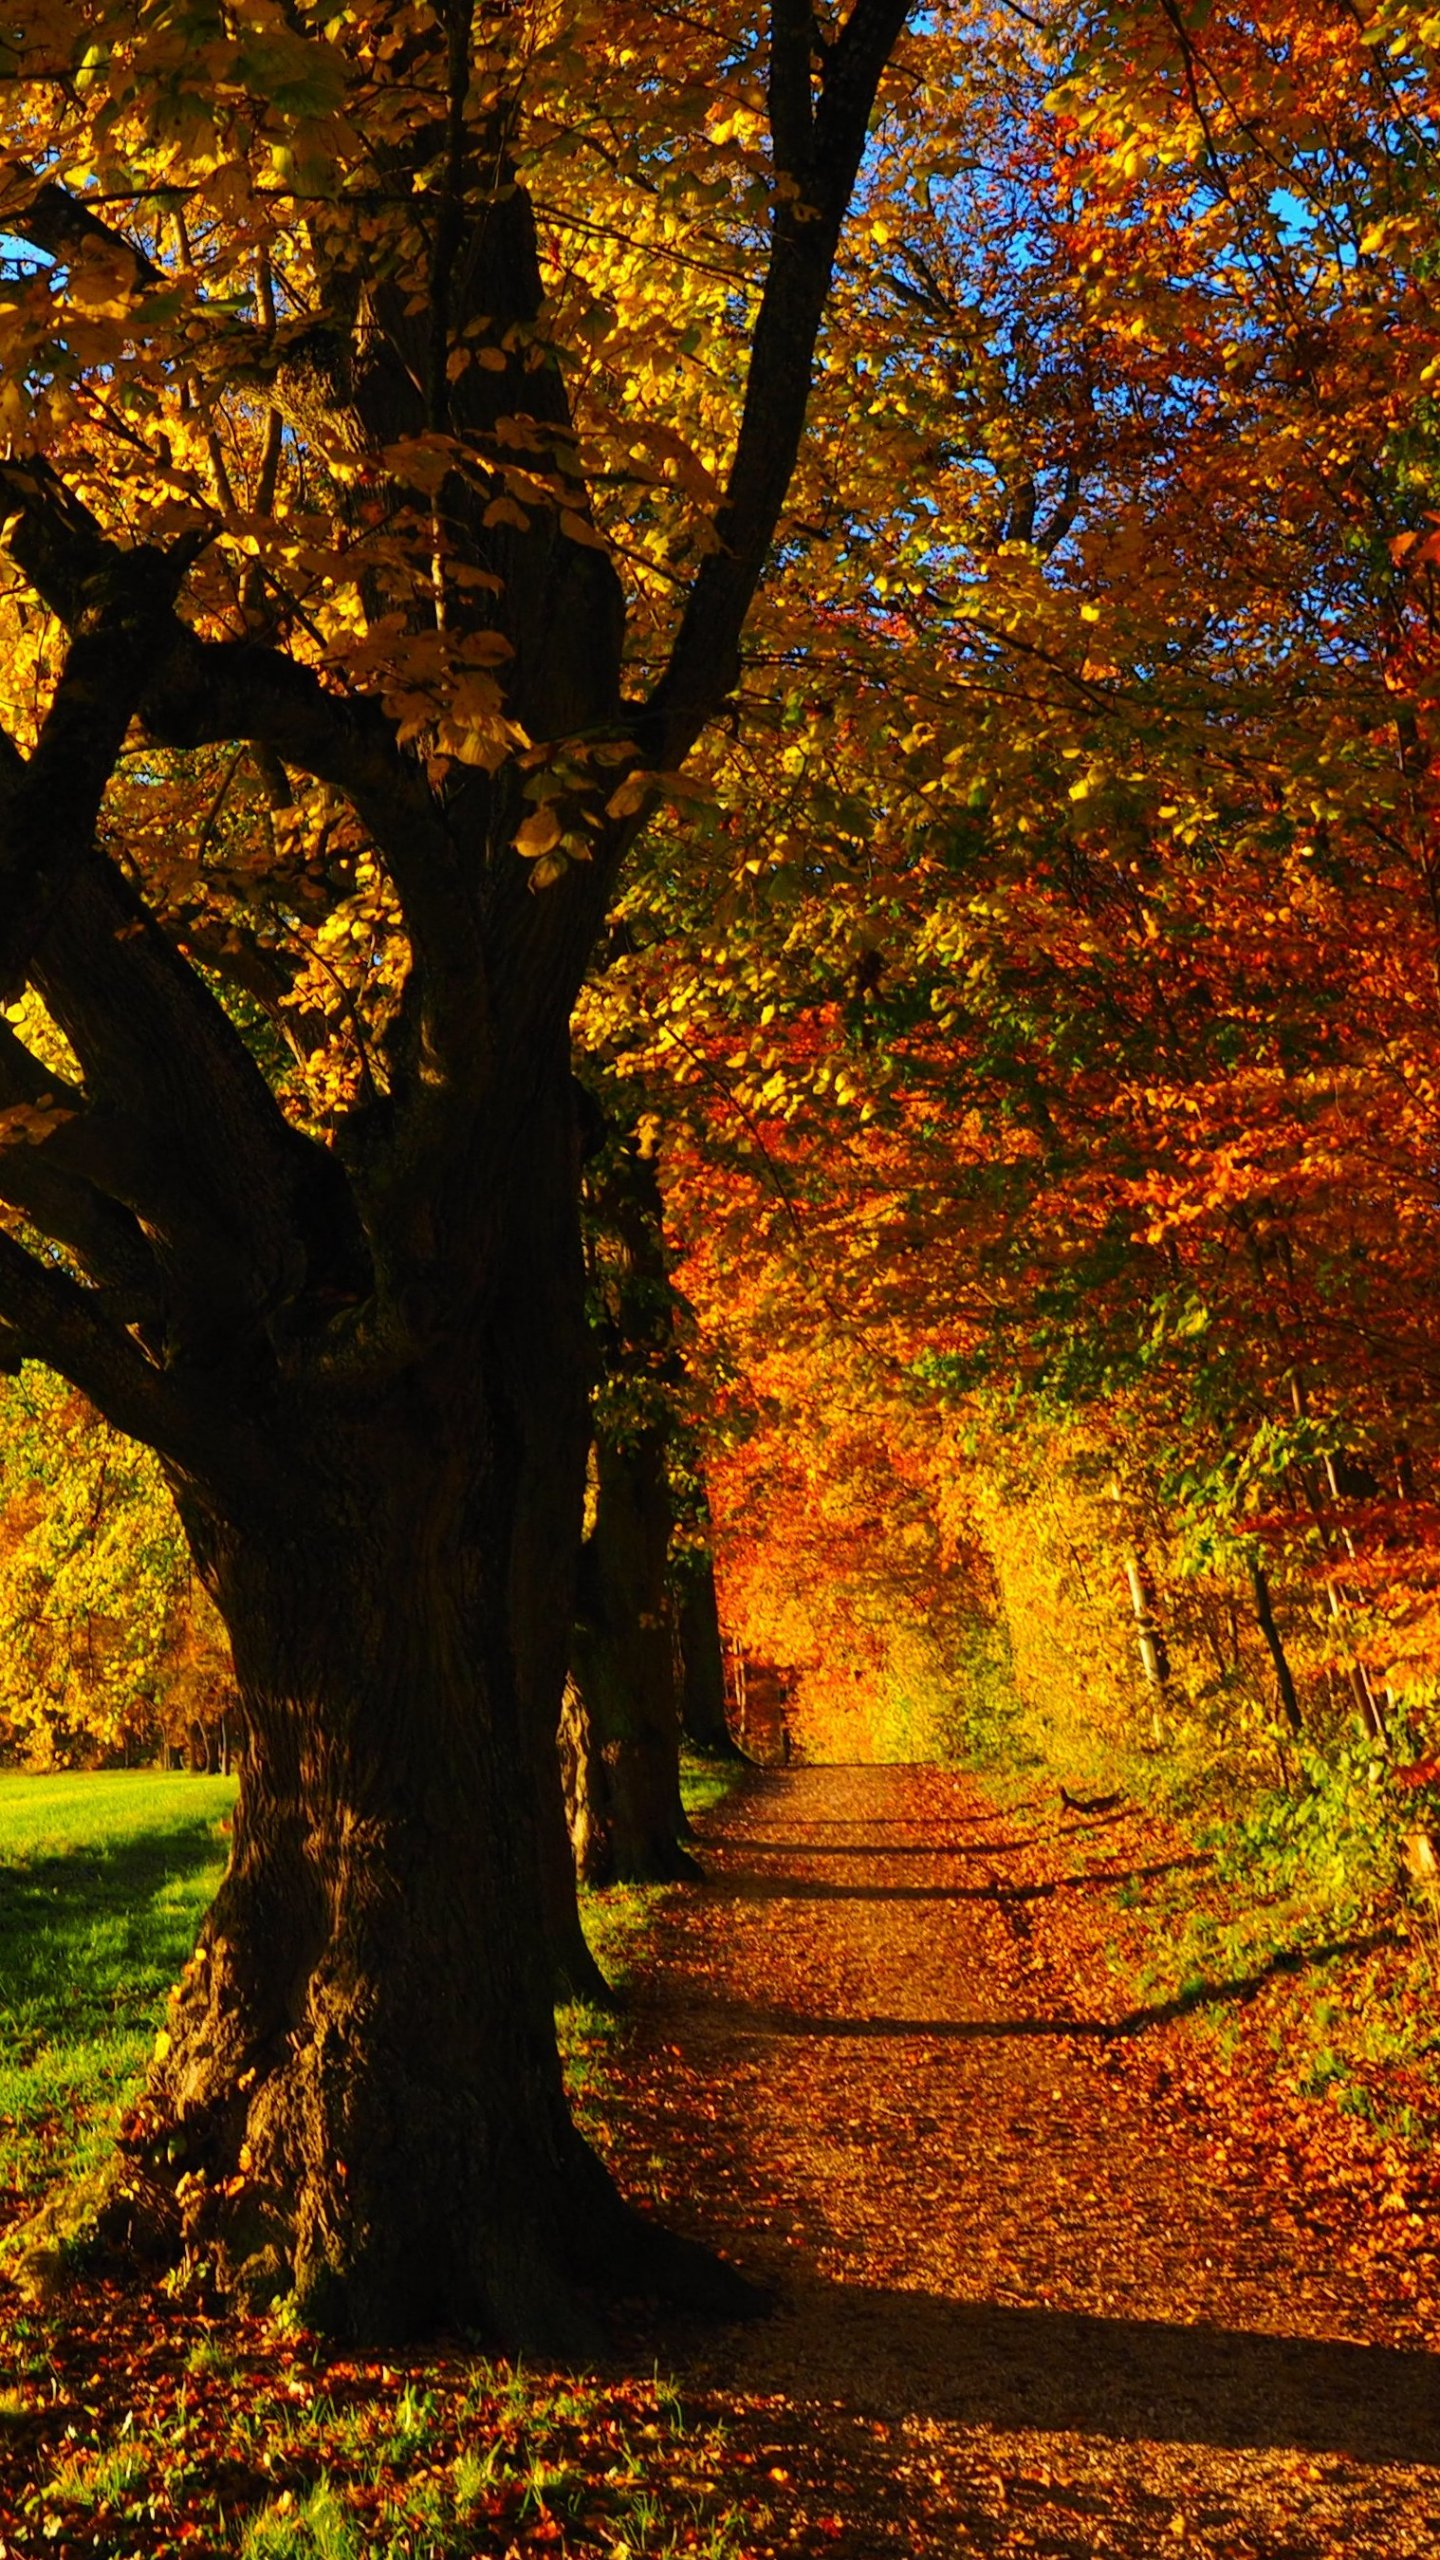 Fall Android Wallpaper Fall Forest Wallpaper Iphone Android Desktop Backgrounds